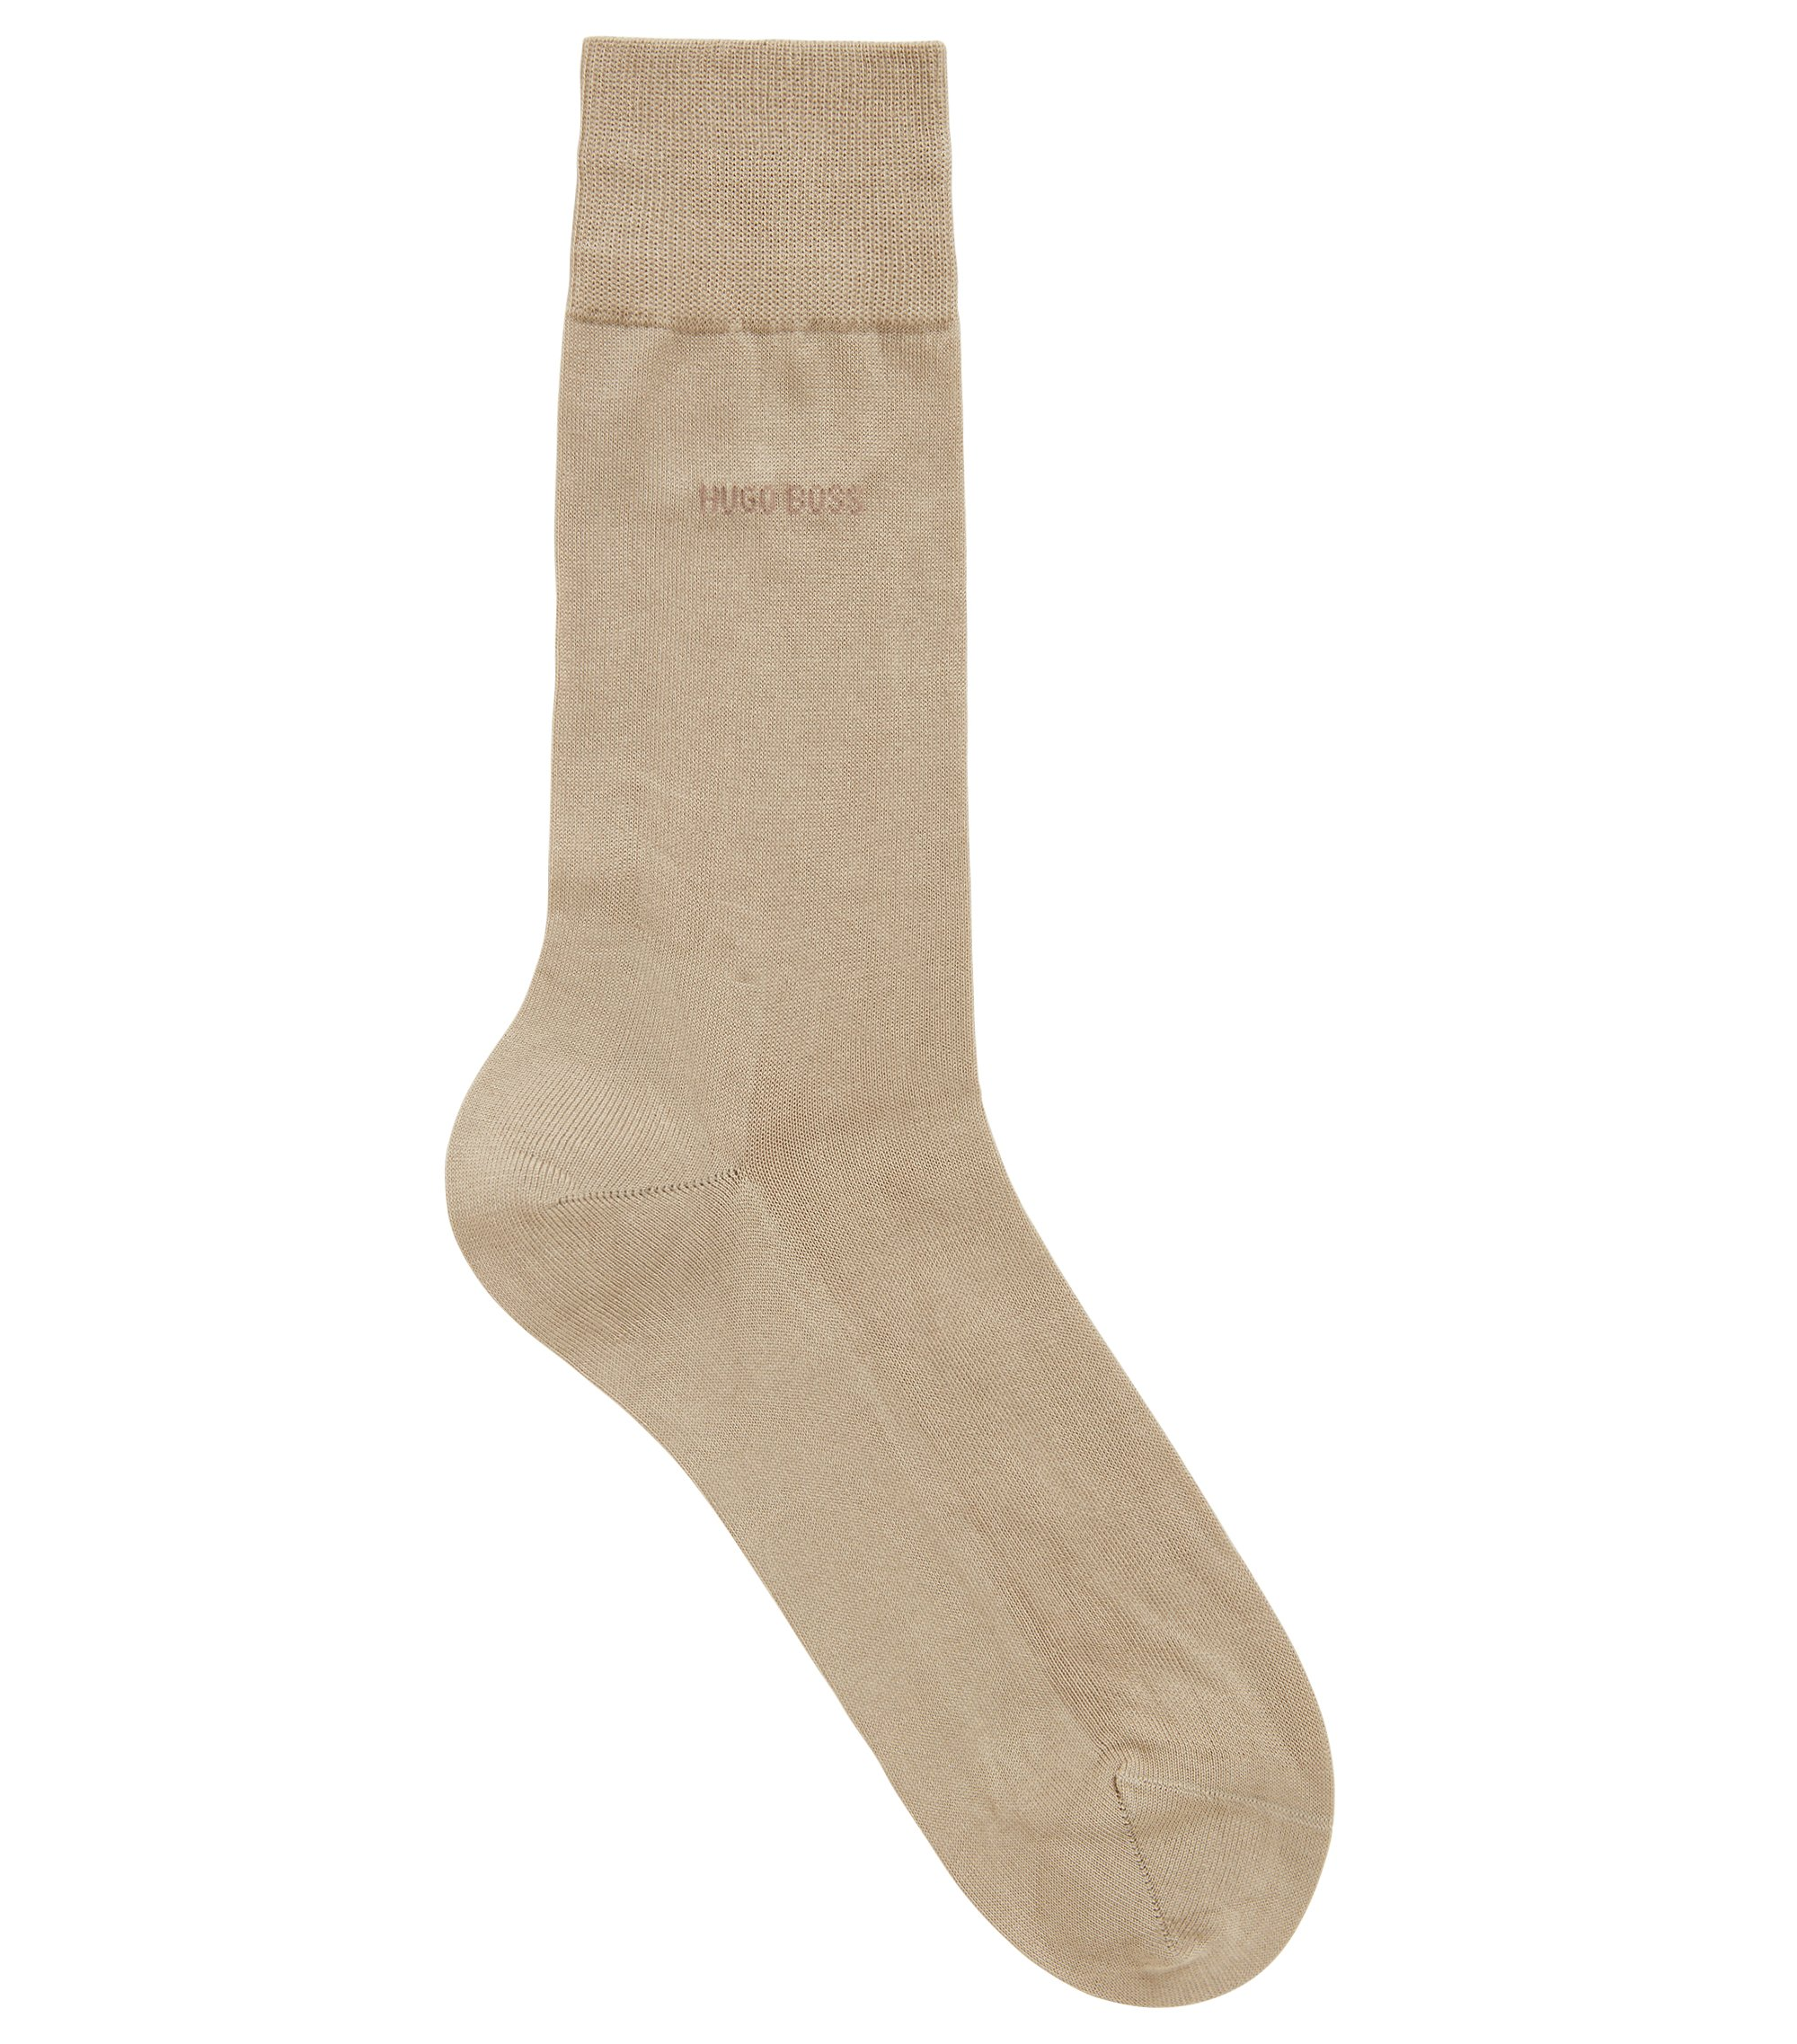 Mercerised Egyptian cotton socks with reinforced sole, Beige